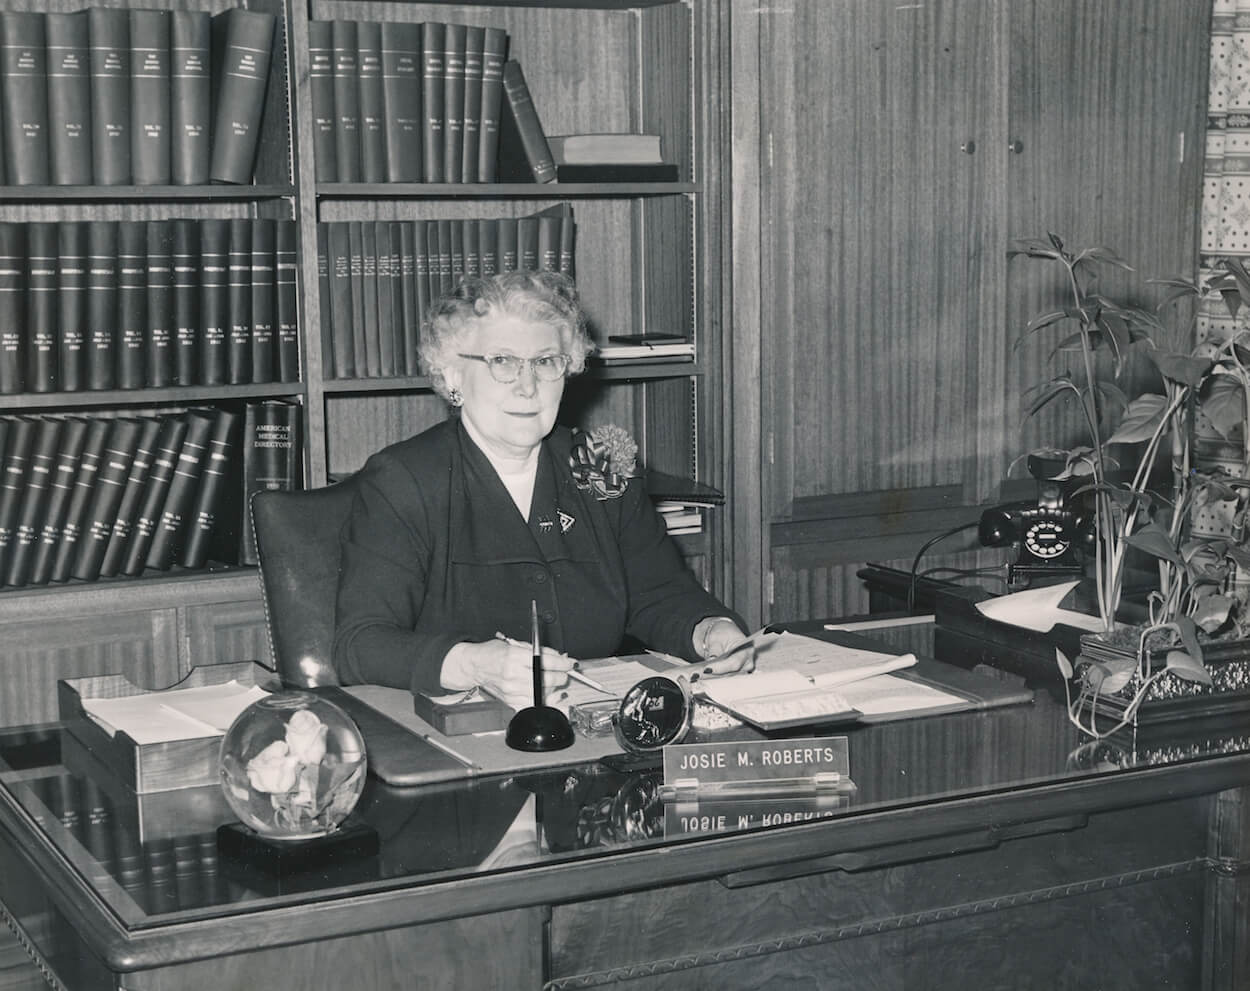 Josie Roberts, who kept Houston Methodist running during the Great Depression, also was instrumental in moving the hospital to the Texas Medical Center.